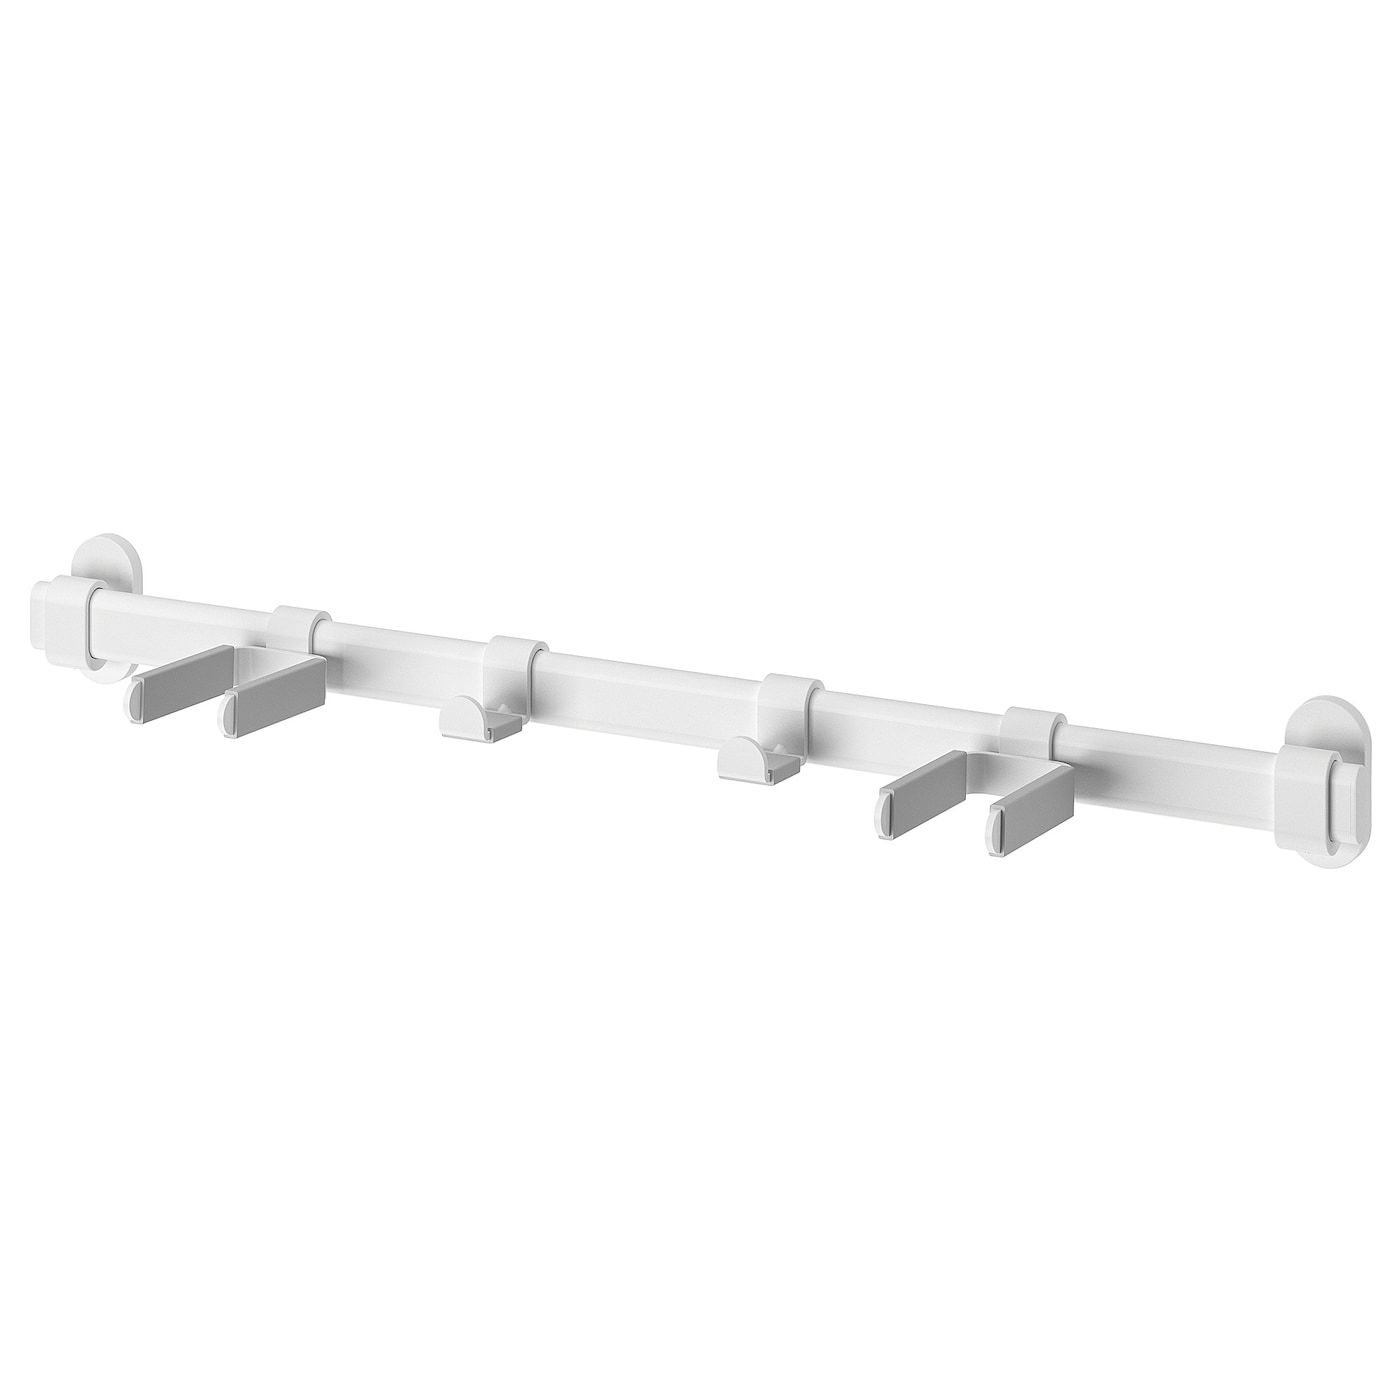 IKEA VAJERT rail with 4 hooks, in-/outdoor Suitable for both indoor and outdoor use.